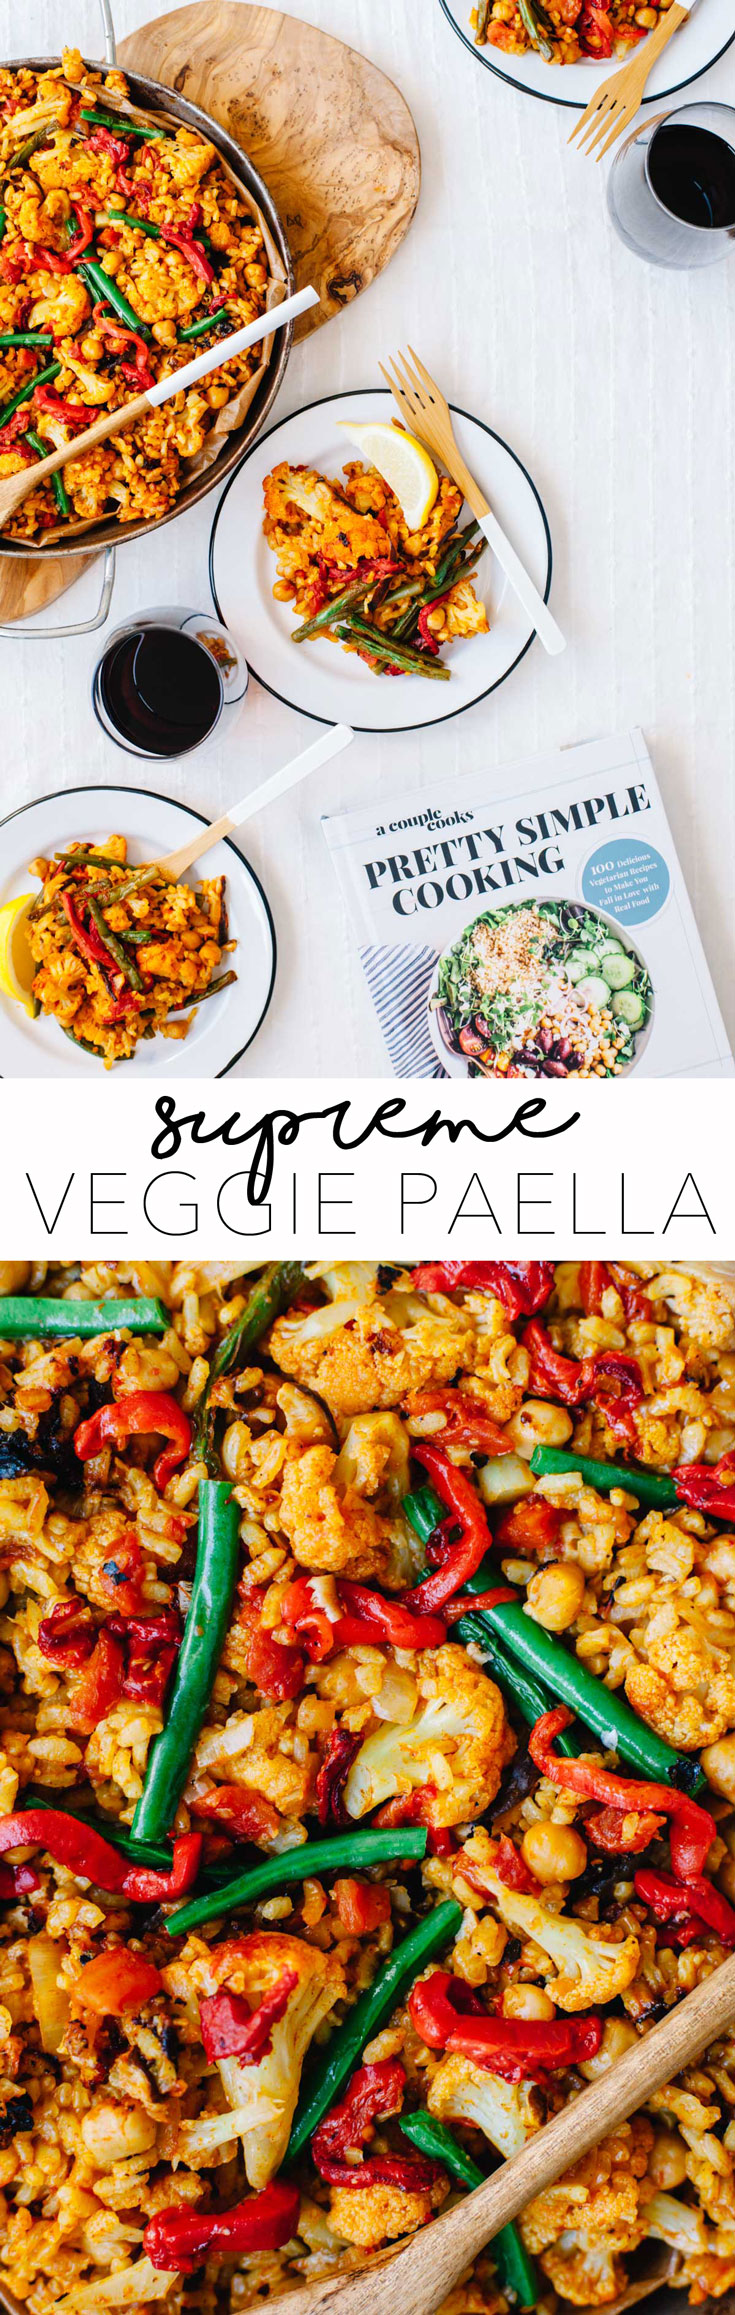 A healthier version of the original - this Veggie Supreme Paella from the Pretty Simple Cooking Cookbook is plant based and packed with flavor! #healthy #vegan #vegetarian | Brewing Happiness